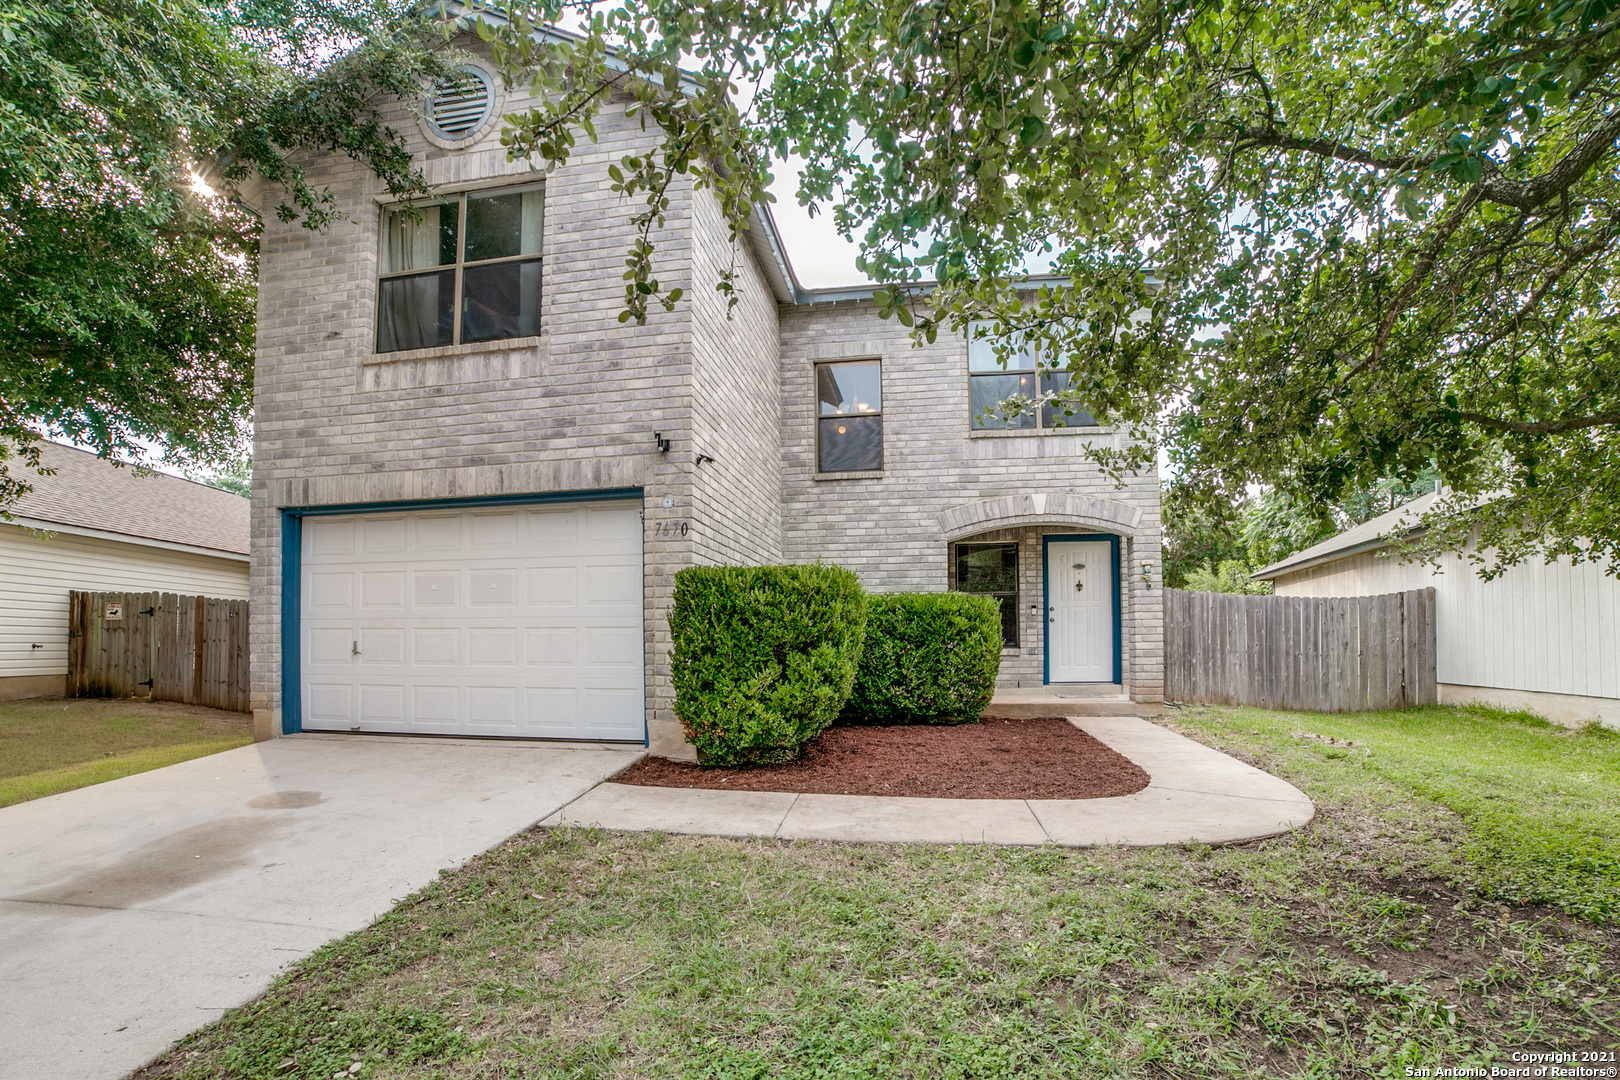 2 Story Home ready for the next family!. 1879 sqft, all bedrooms upstairs, fresh interior paint throughout home. Walking distance to Elementary school, community park & pool. Spacious first floor, flows really well for entertaining. Back yard needs a bit of TLC.. Come and take a look!